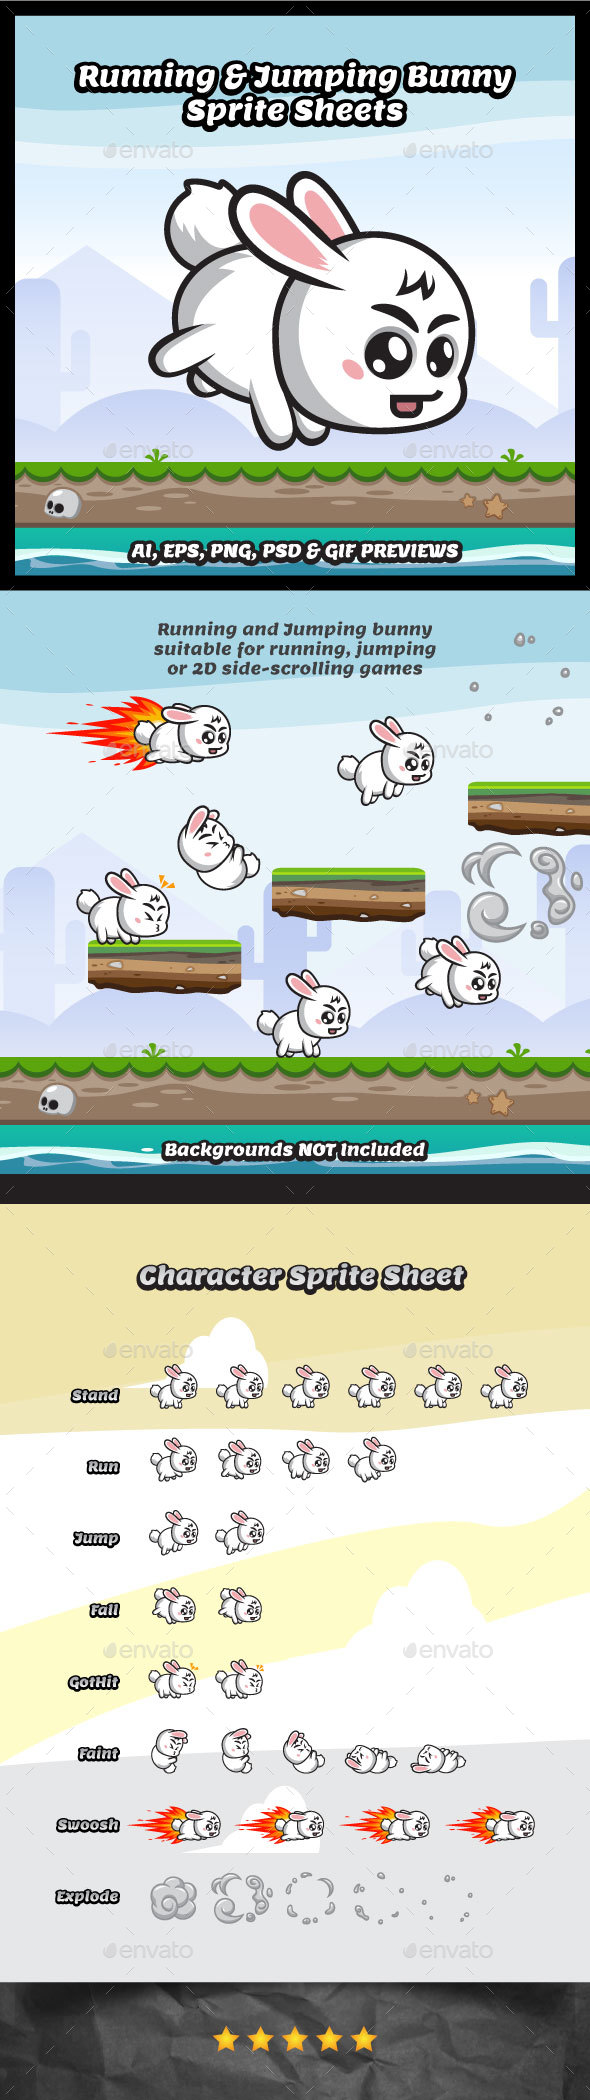 Running and Jumping Bunny Game Character (Sprites)